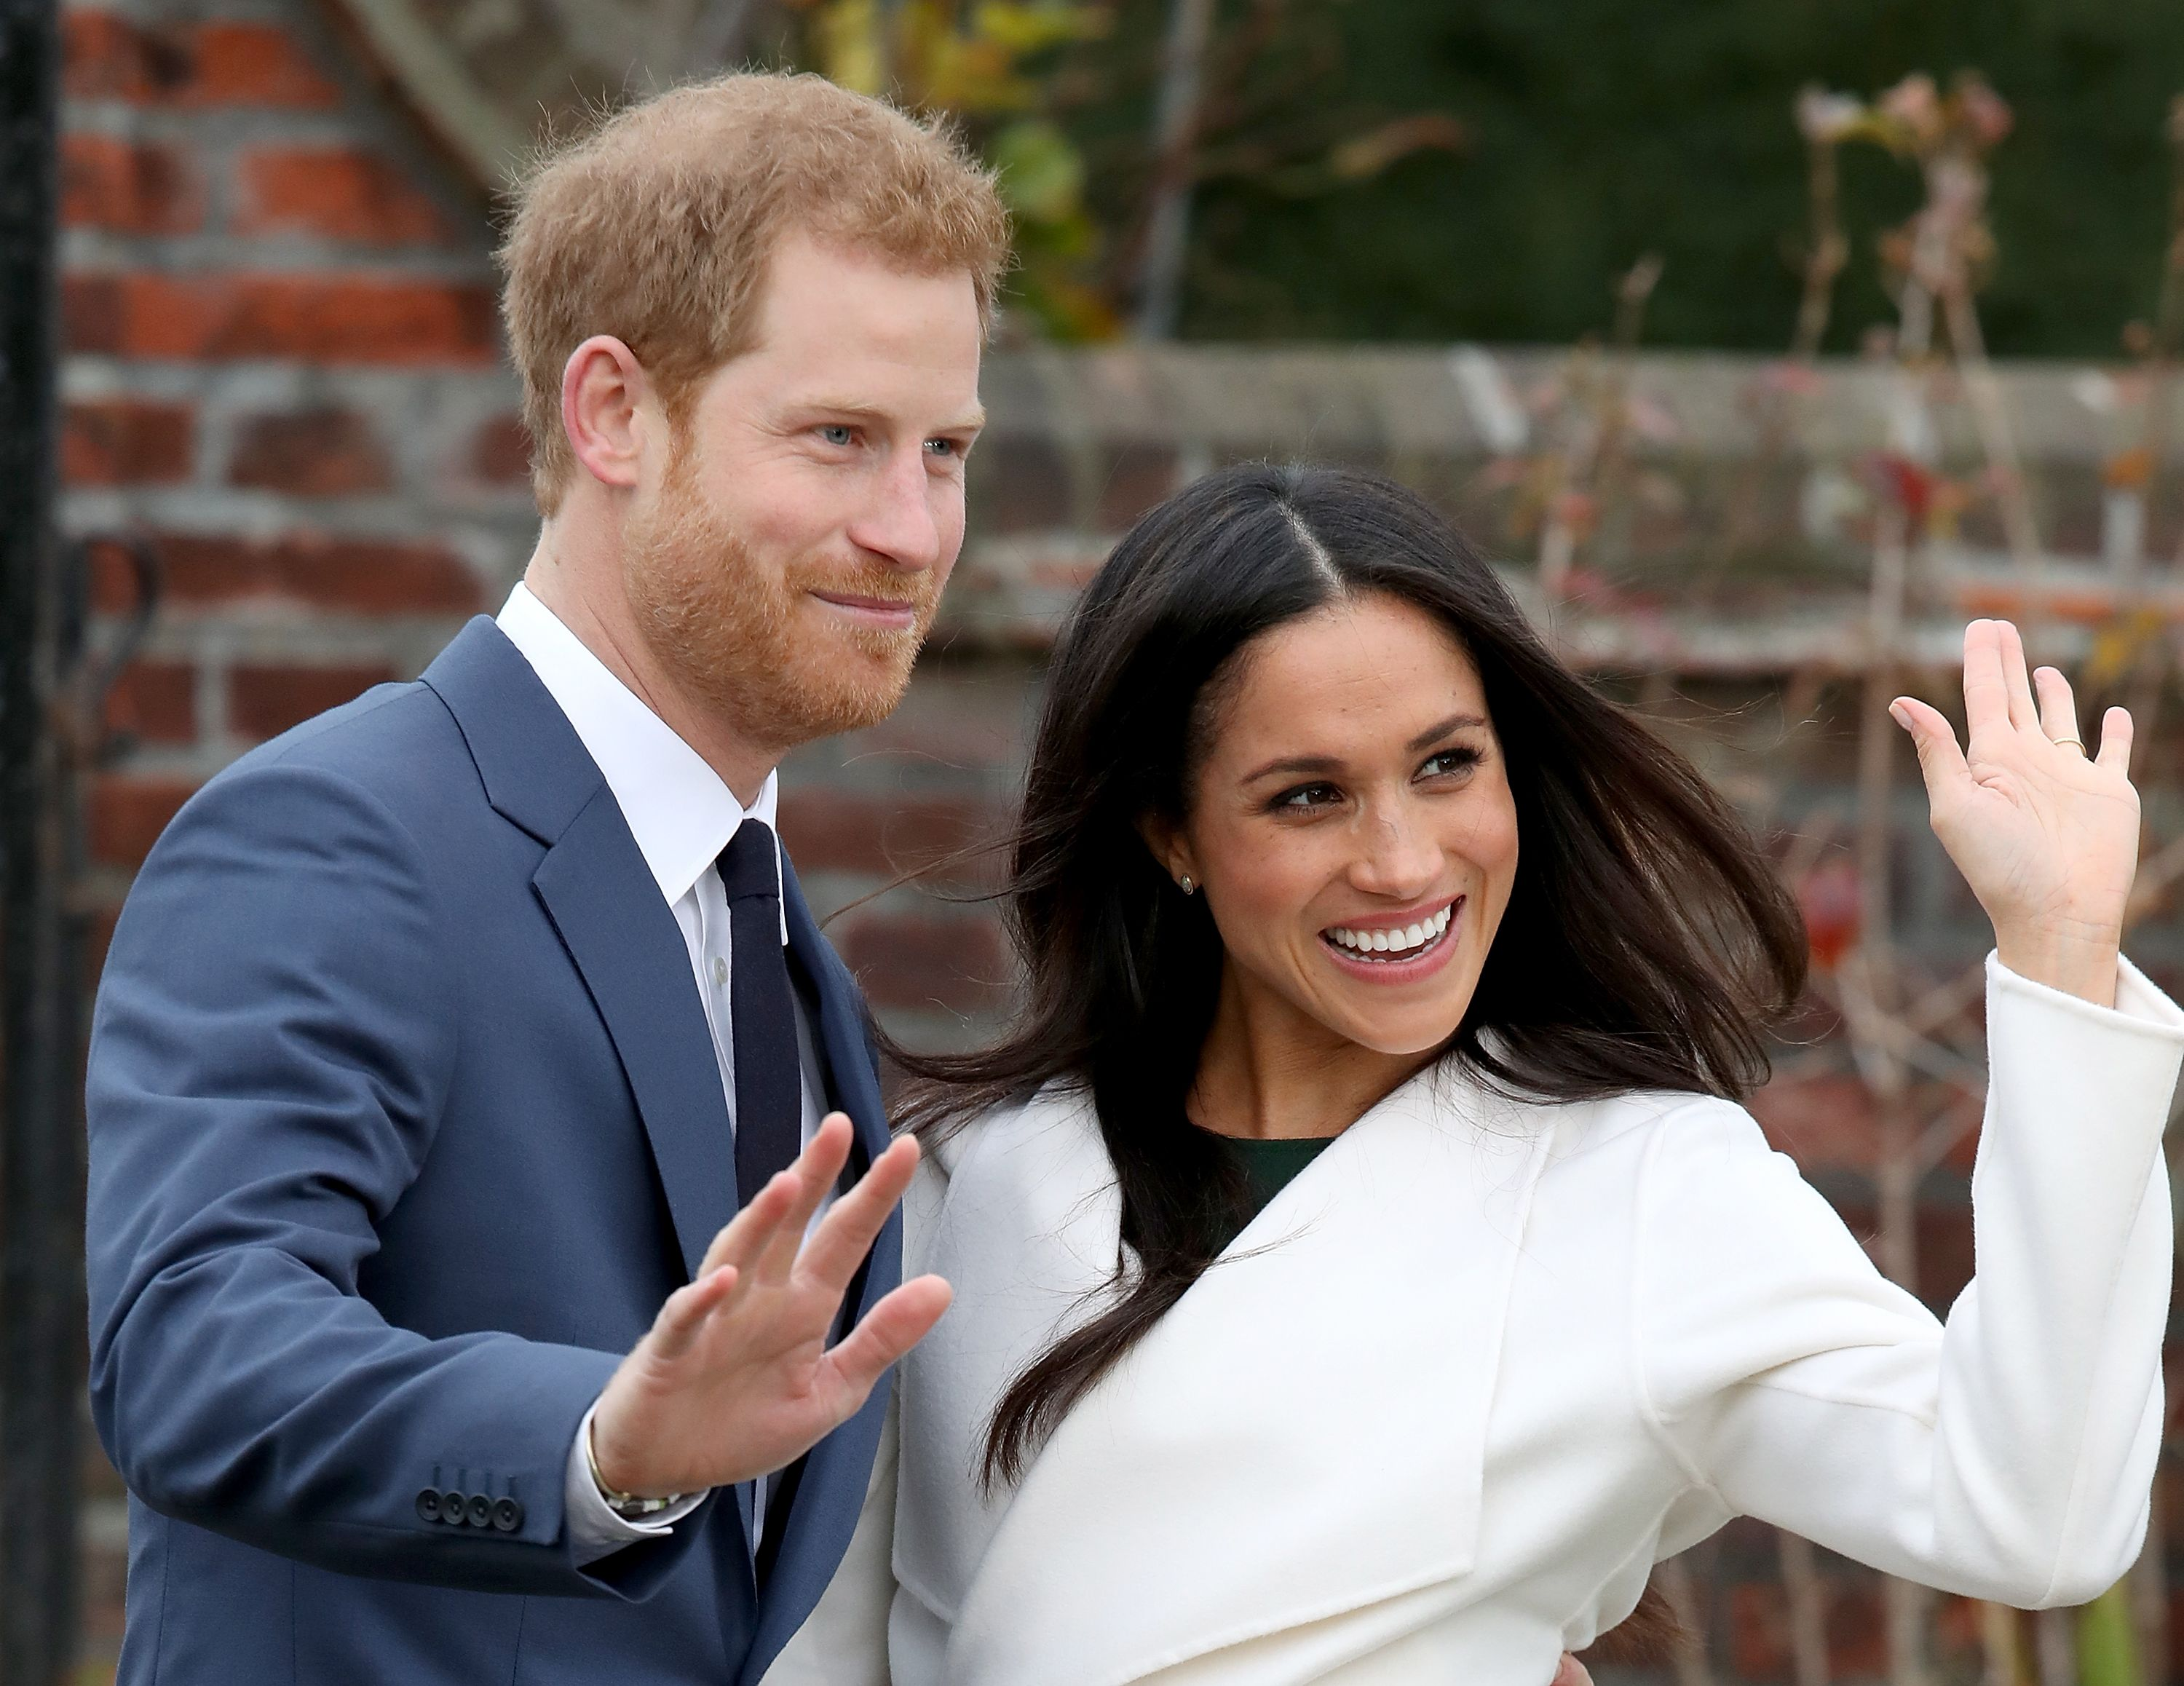 Prince Harry and Meghan Markle during their engagement announcement at Kensington Palace on November 27, 2017, in London, England. | Source: Getty Images